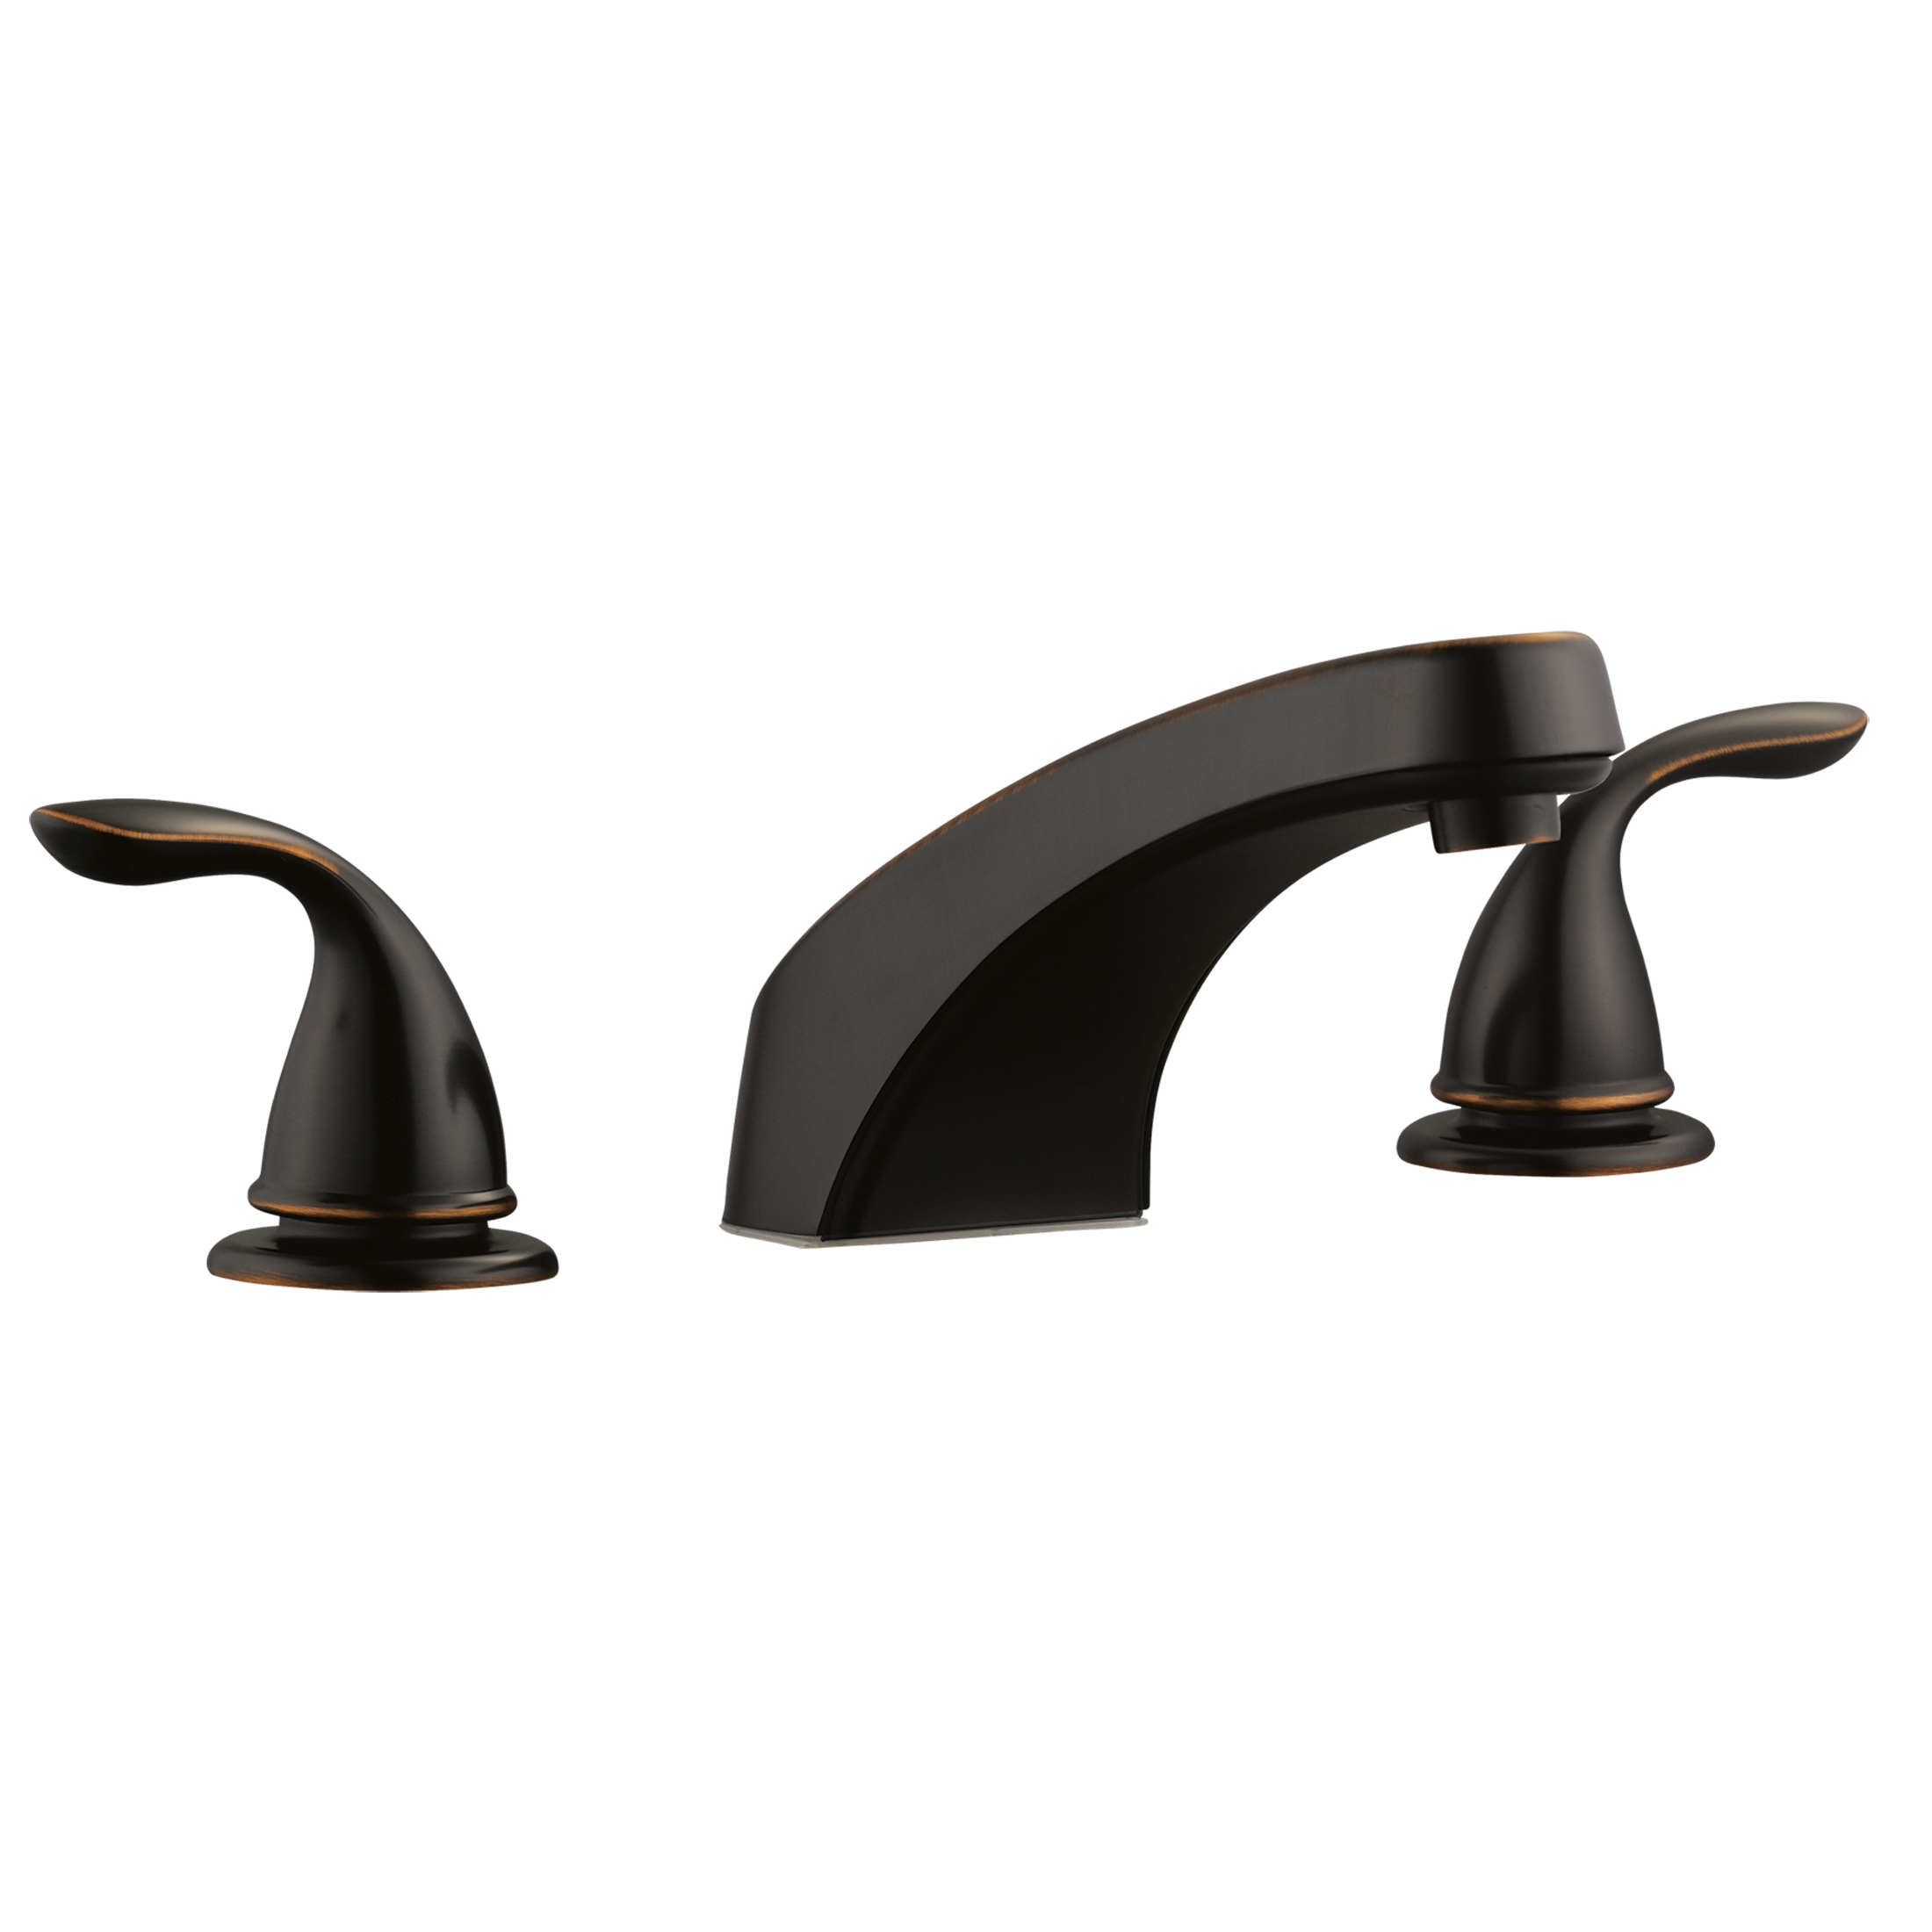 Ashland Roman Tub Faucet, Oil Rubbed Bronze